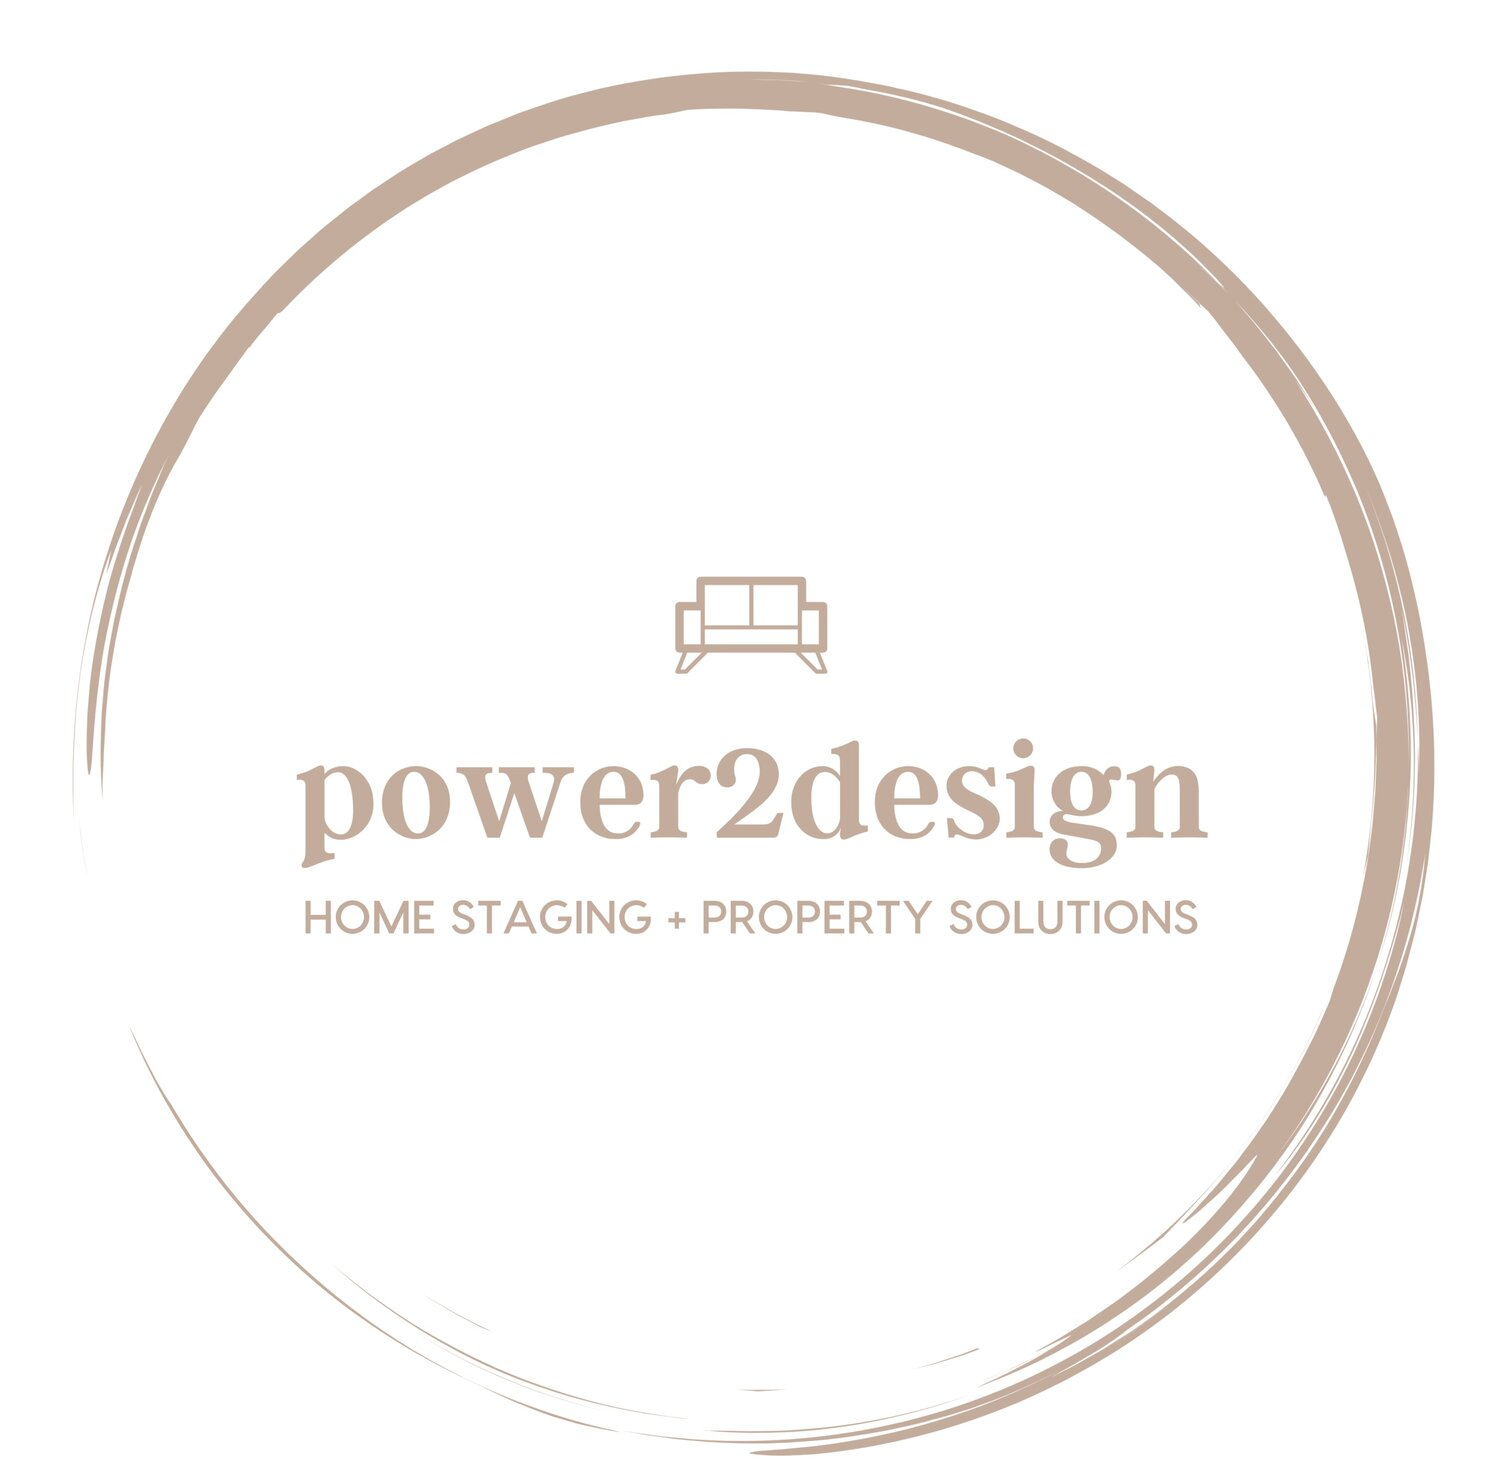 Power2design.ie